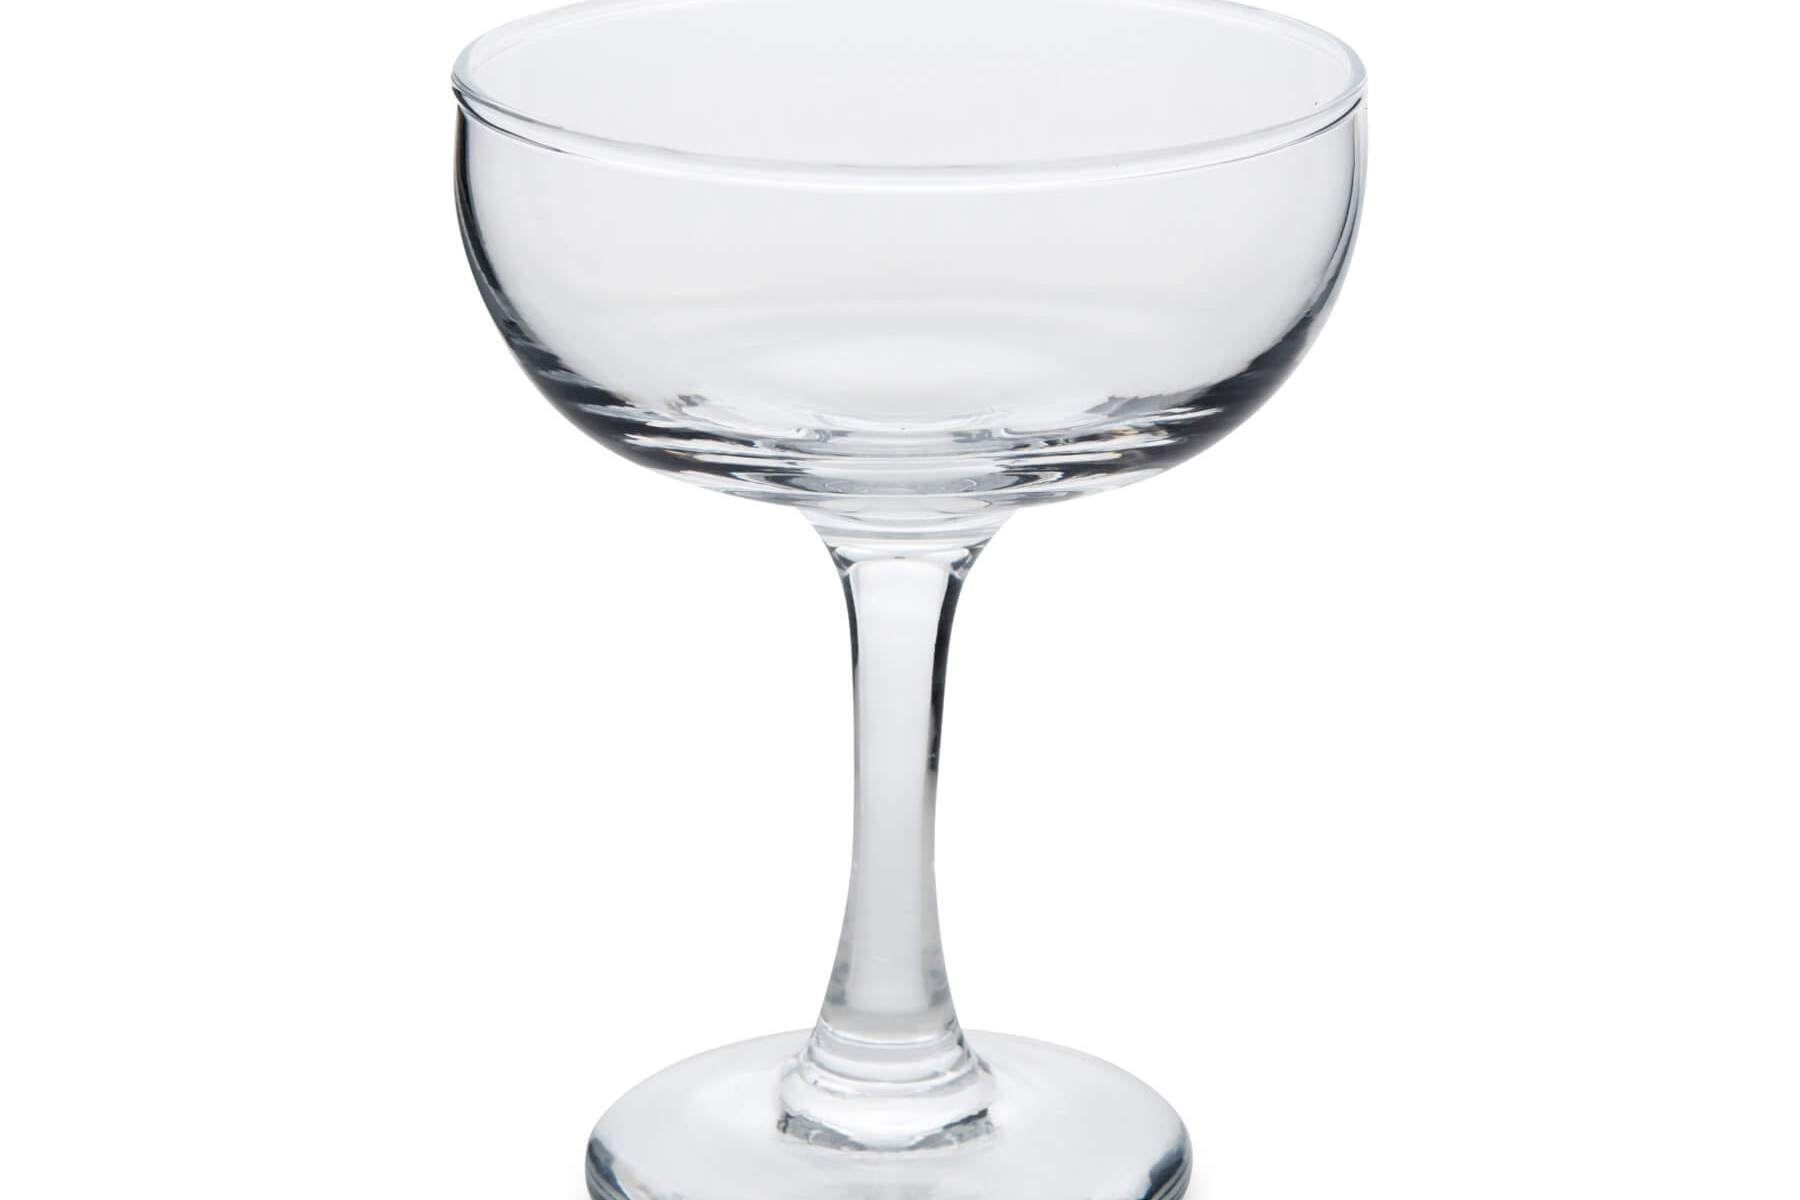 Coupe Glass Professional Series (6 oz 180 ml) Fifth & Vermouth - 1